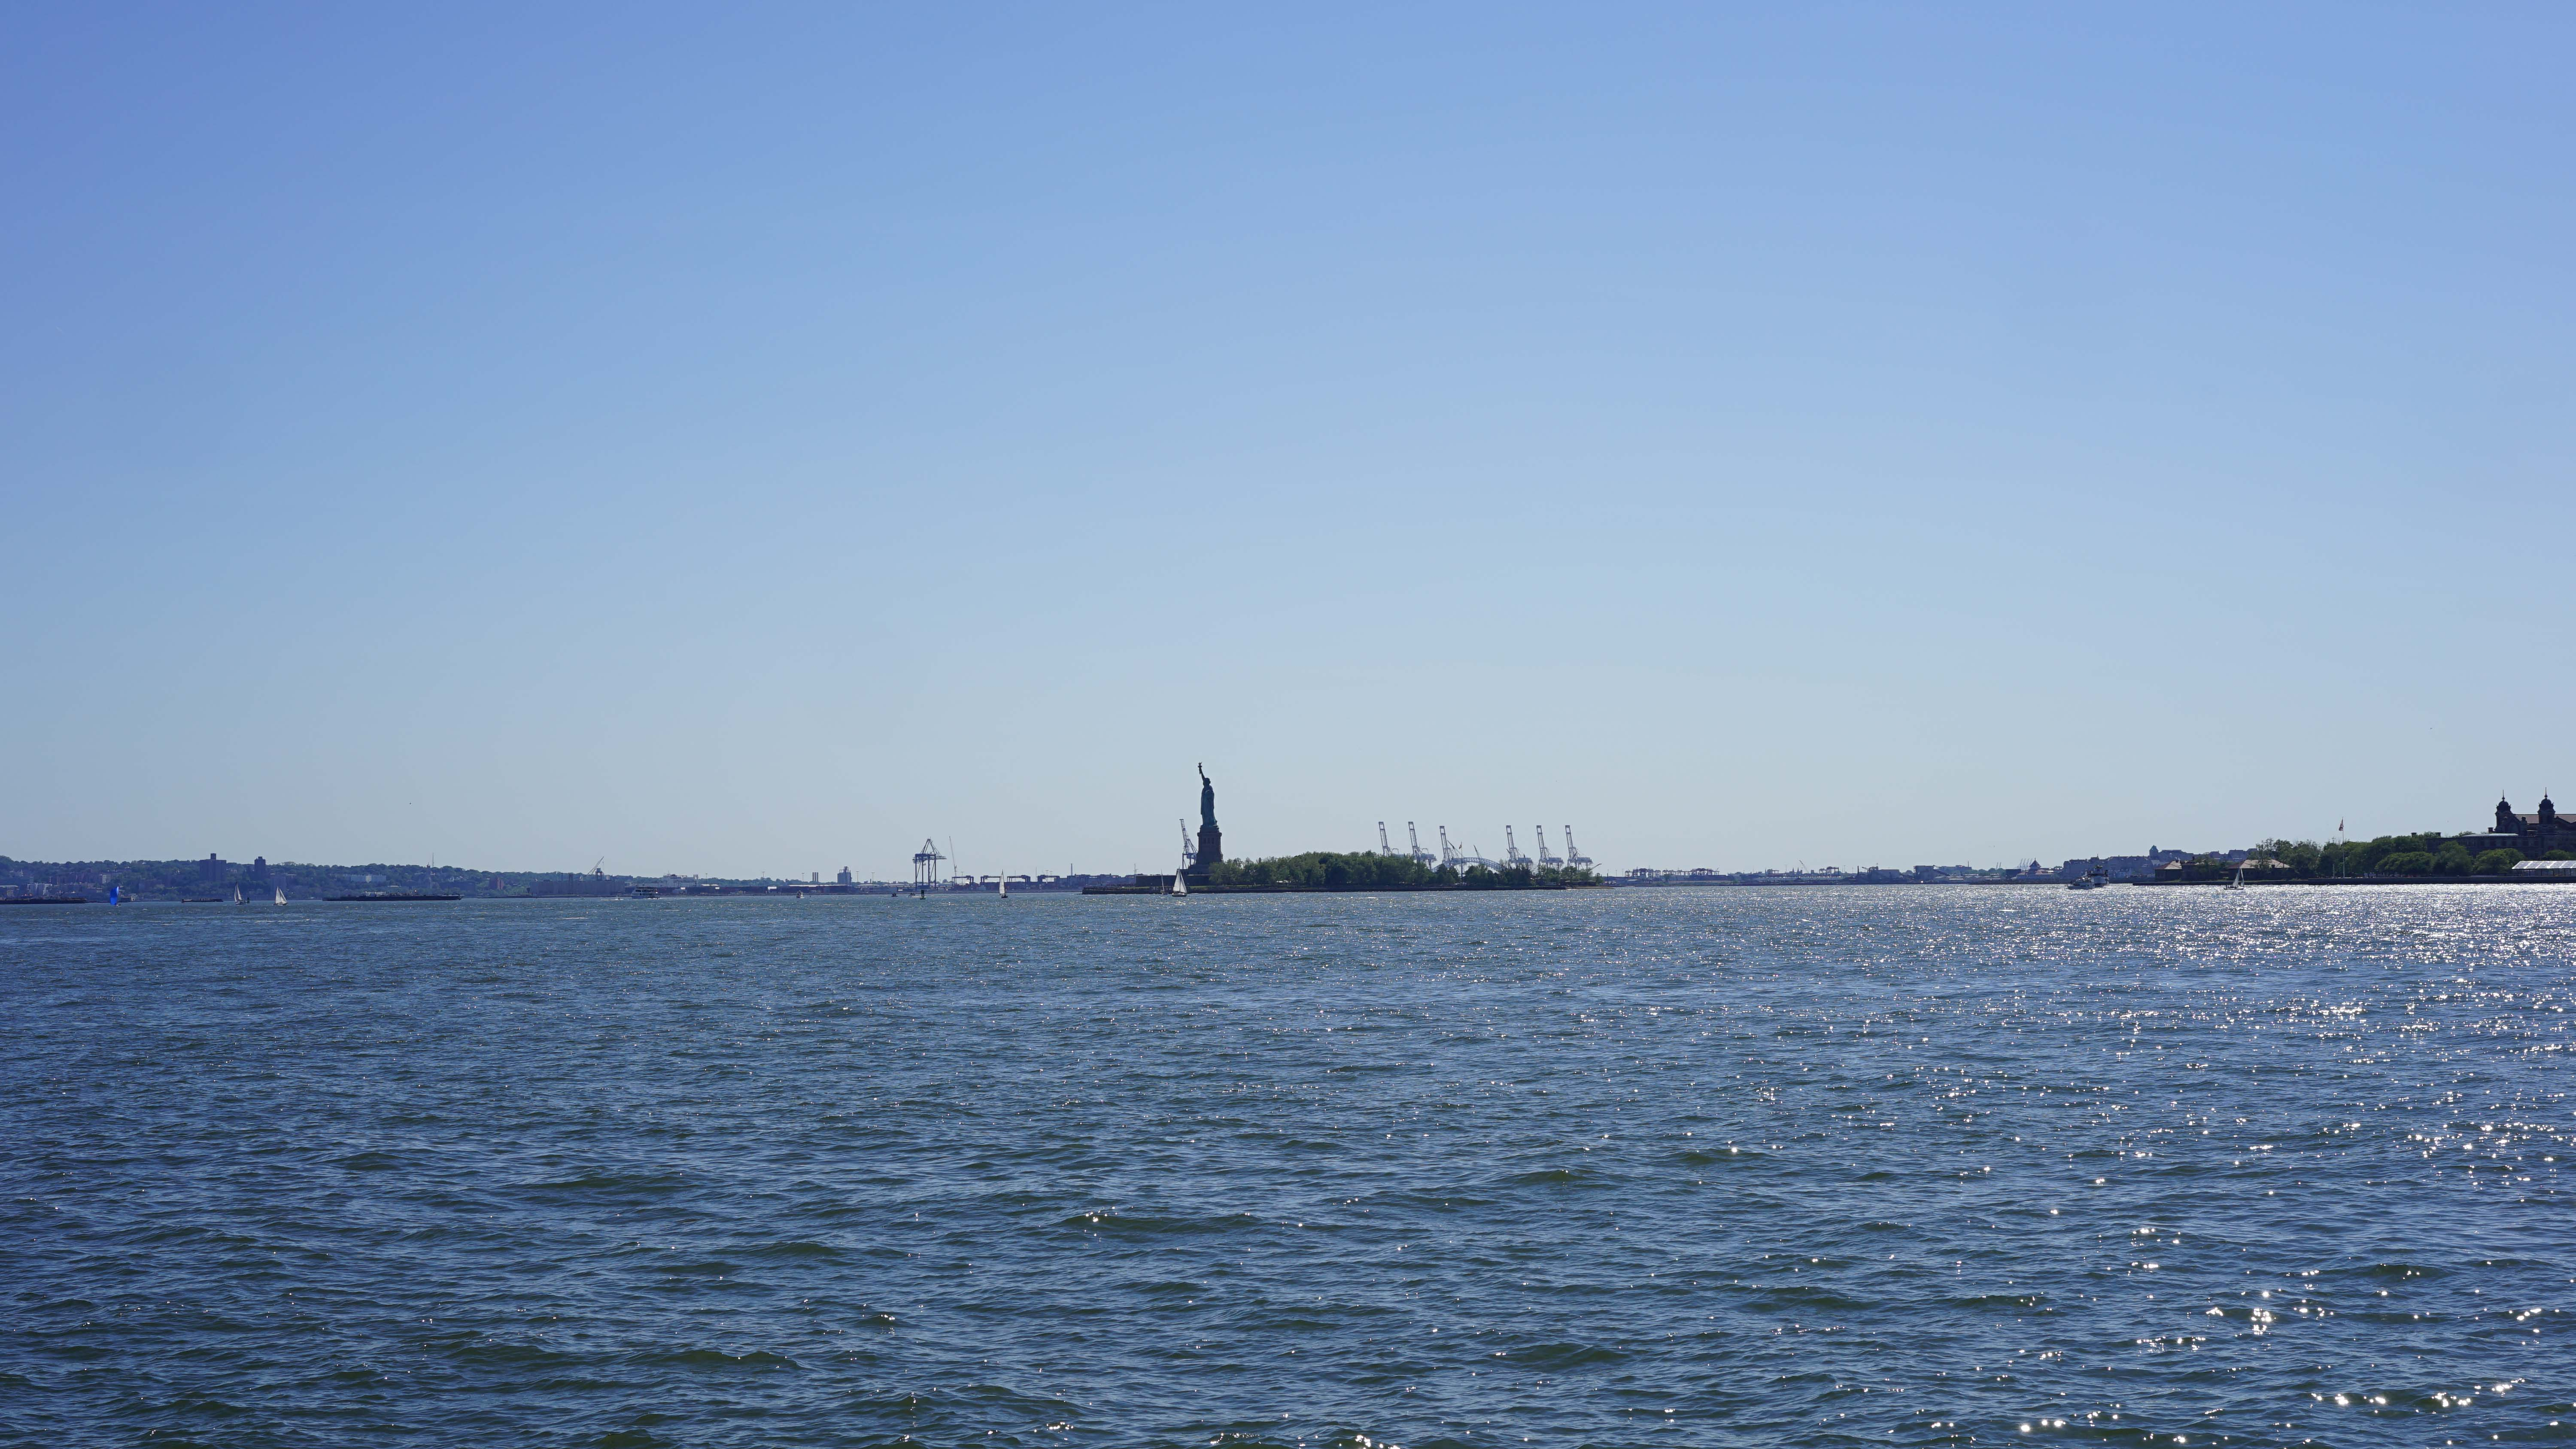 Statue of Liberty 5-23-2015